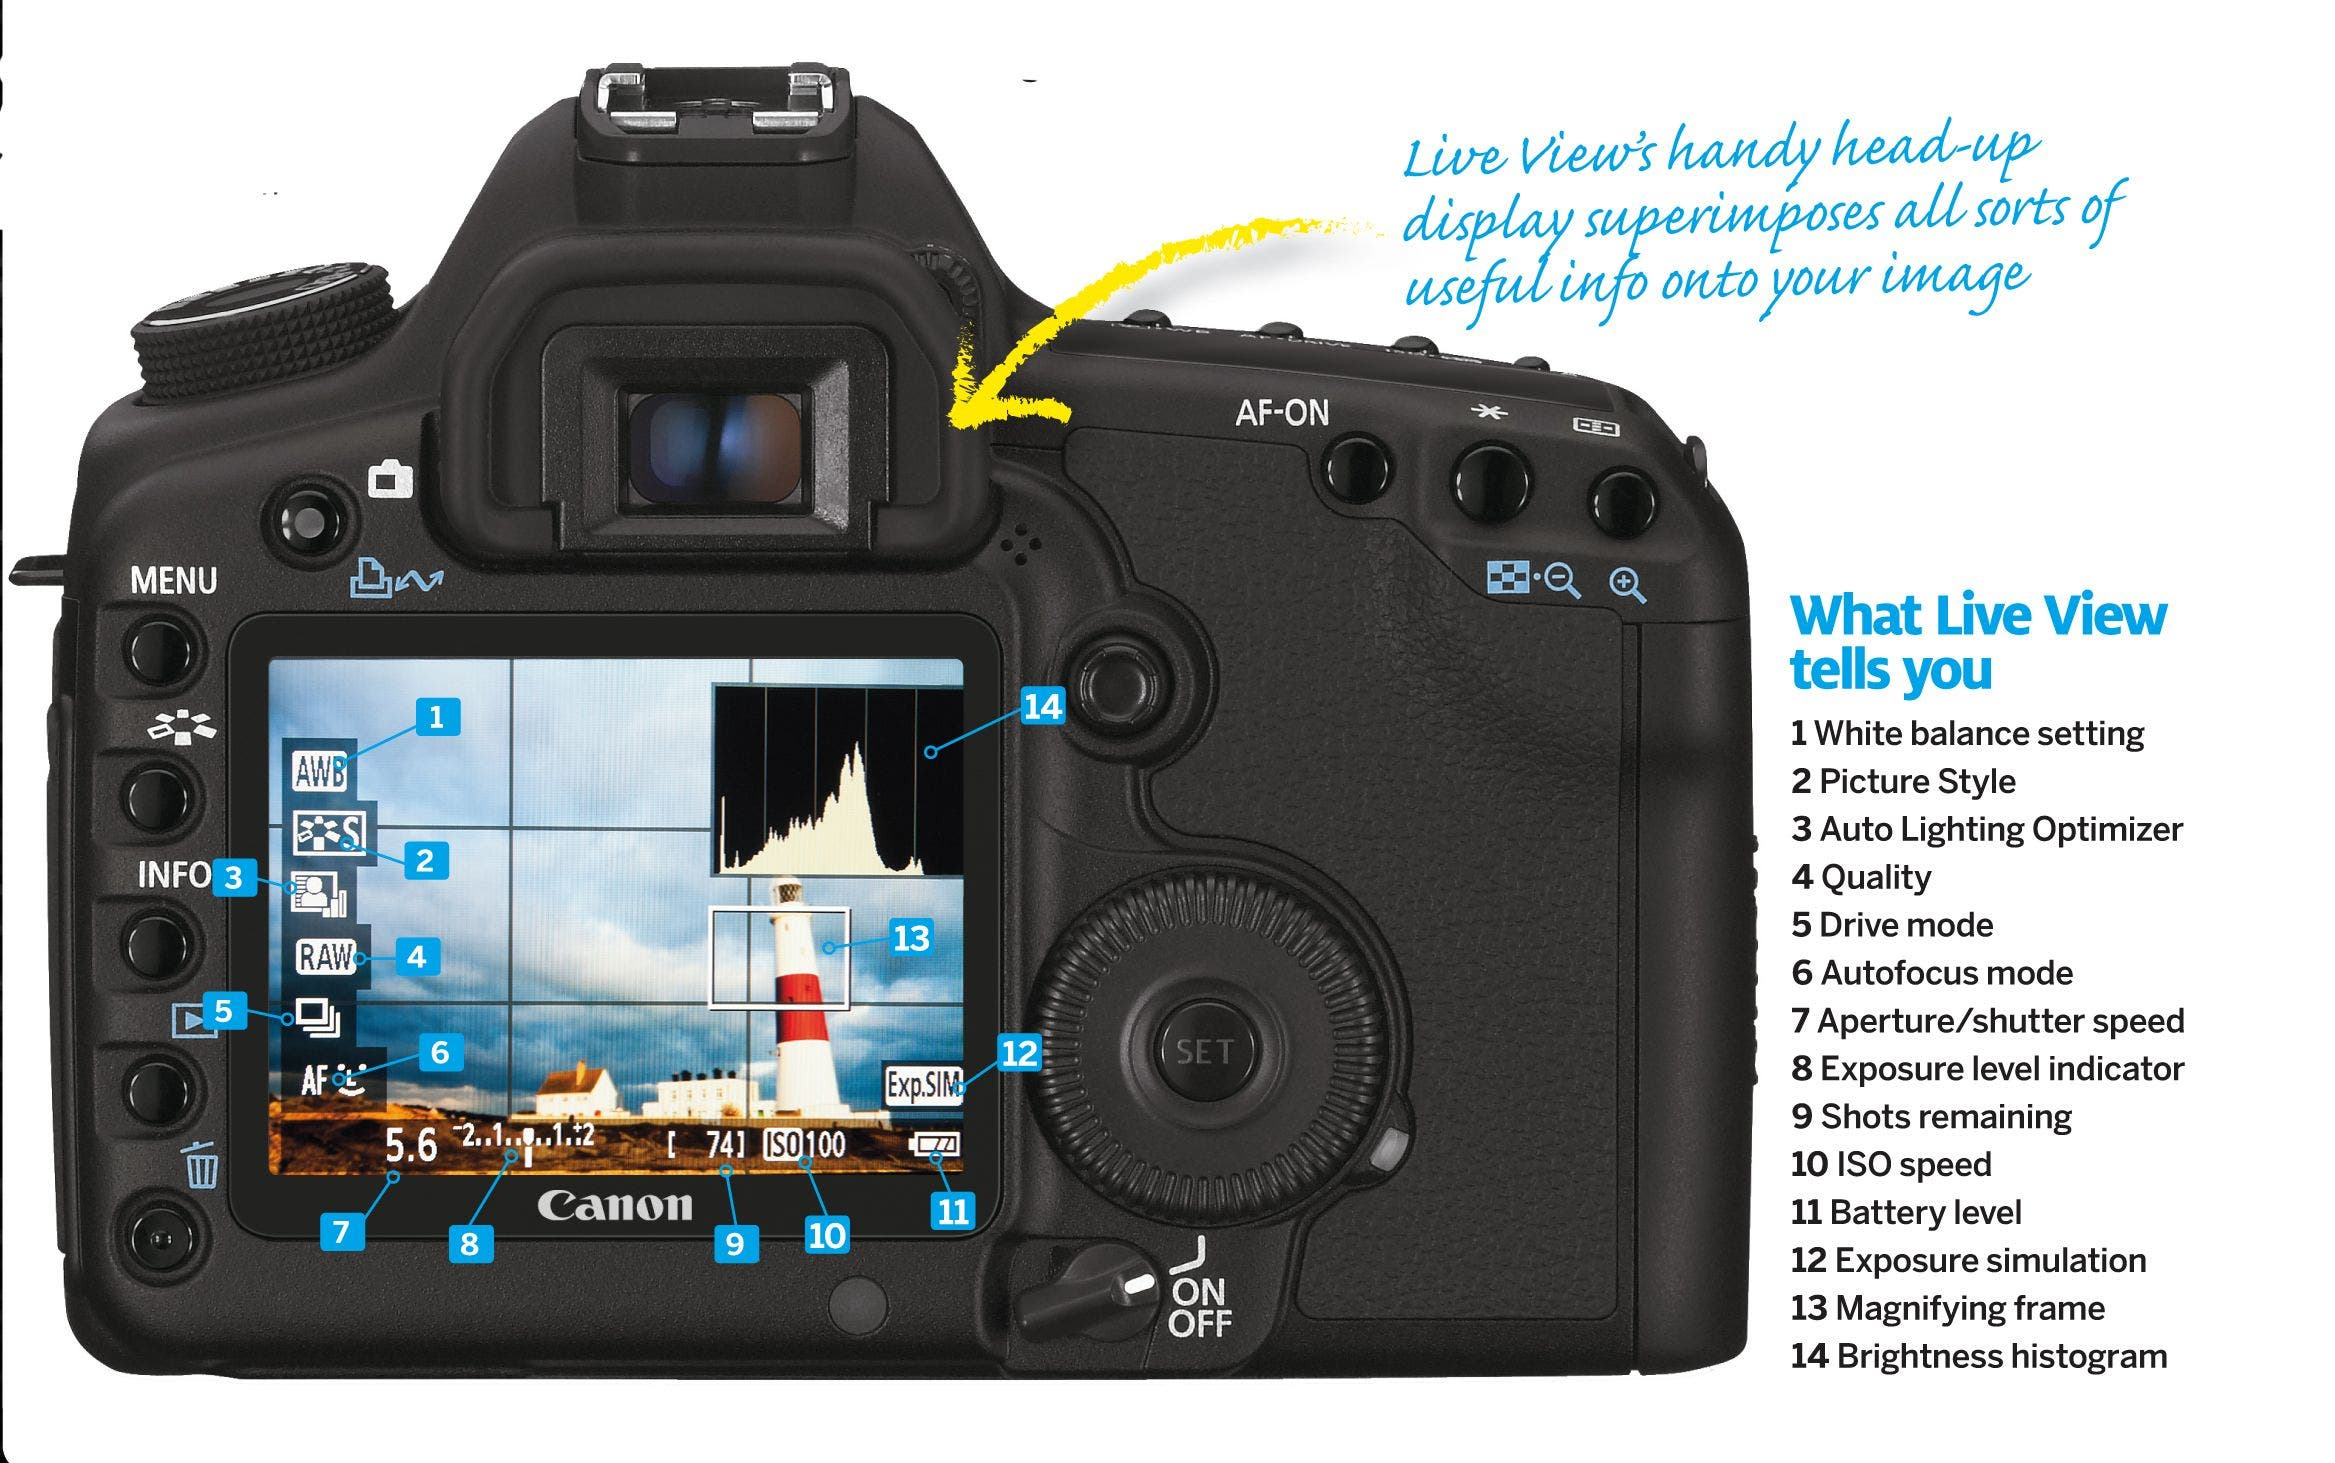 Photography Cheat Sheet: Guide to the Symbols on Your Camera